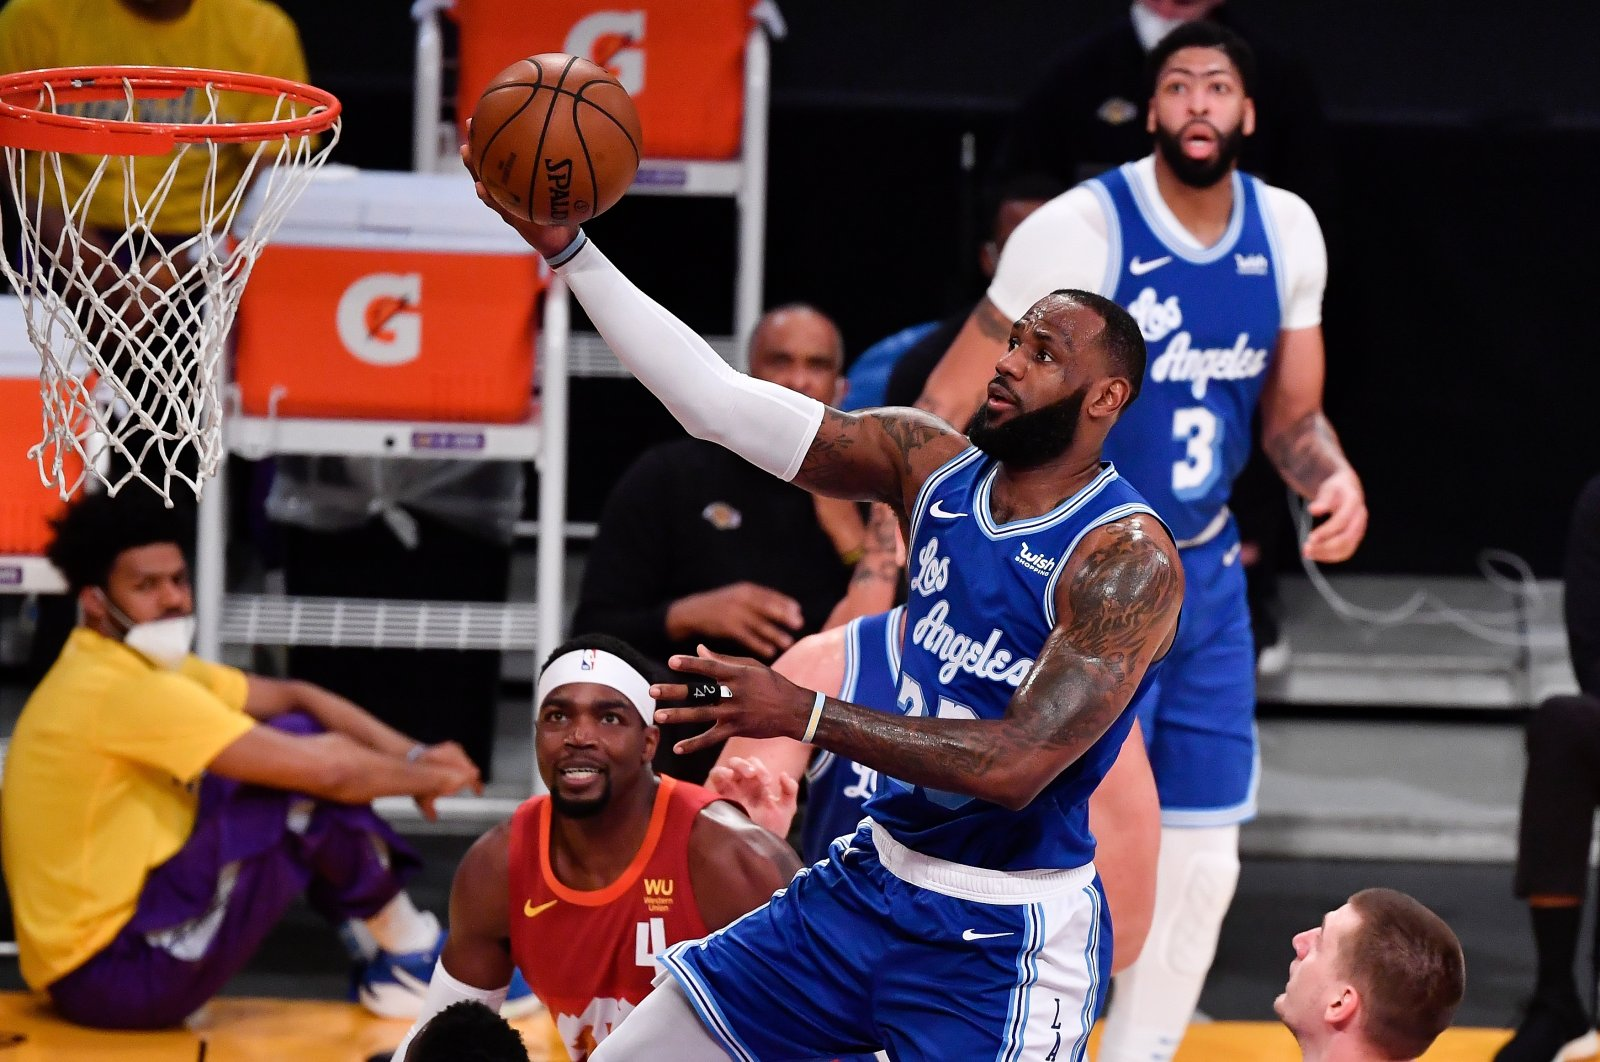 Los Angeles Lakers forward LeBron James (C) scores over Denver Nuggets forward JaMychal Green (L) and center Nikola Jokic (R) during the first quarter at Staples Center, Angeles, California, U.S., Feb 4, 2021. (REUTERS Photo)